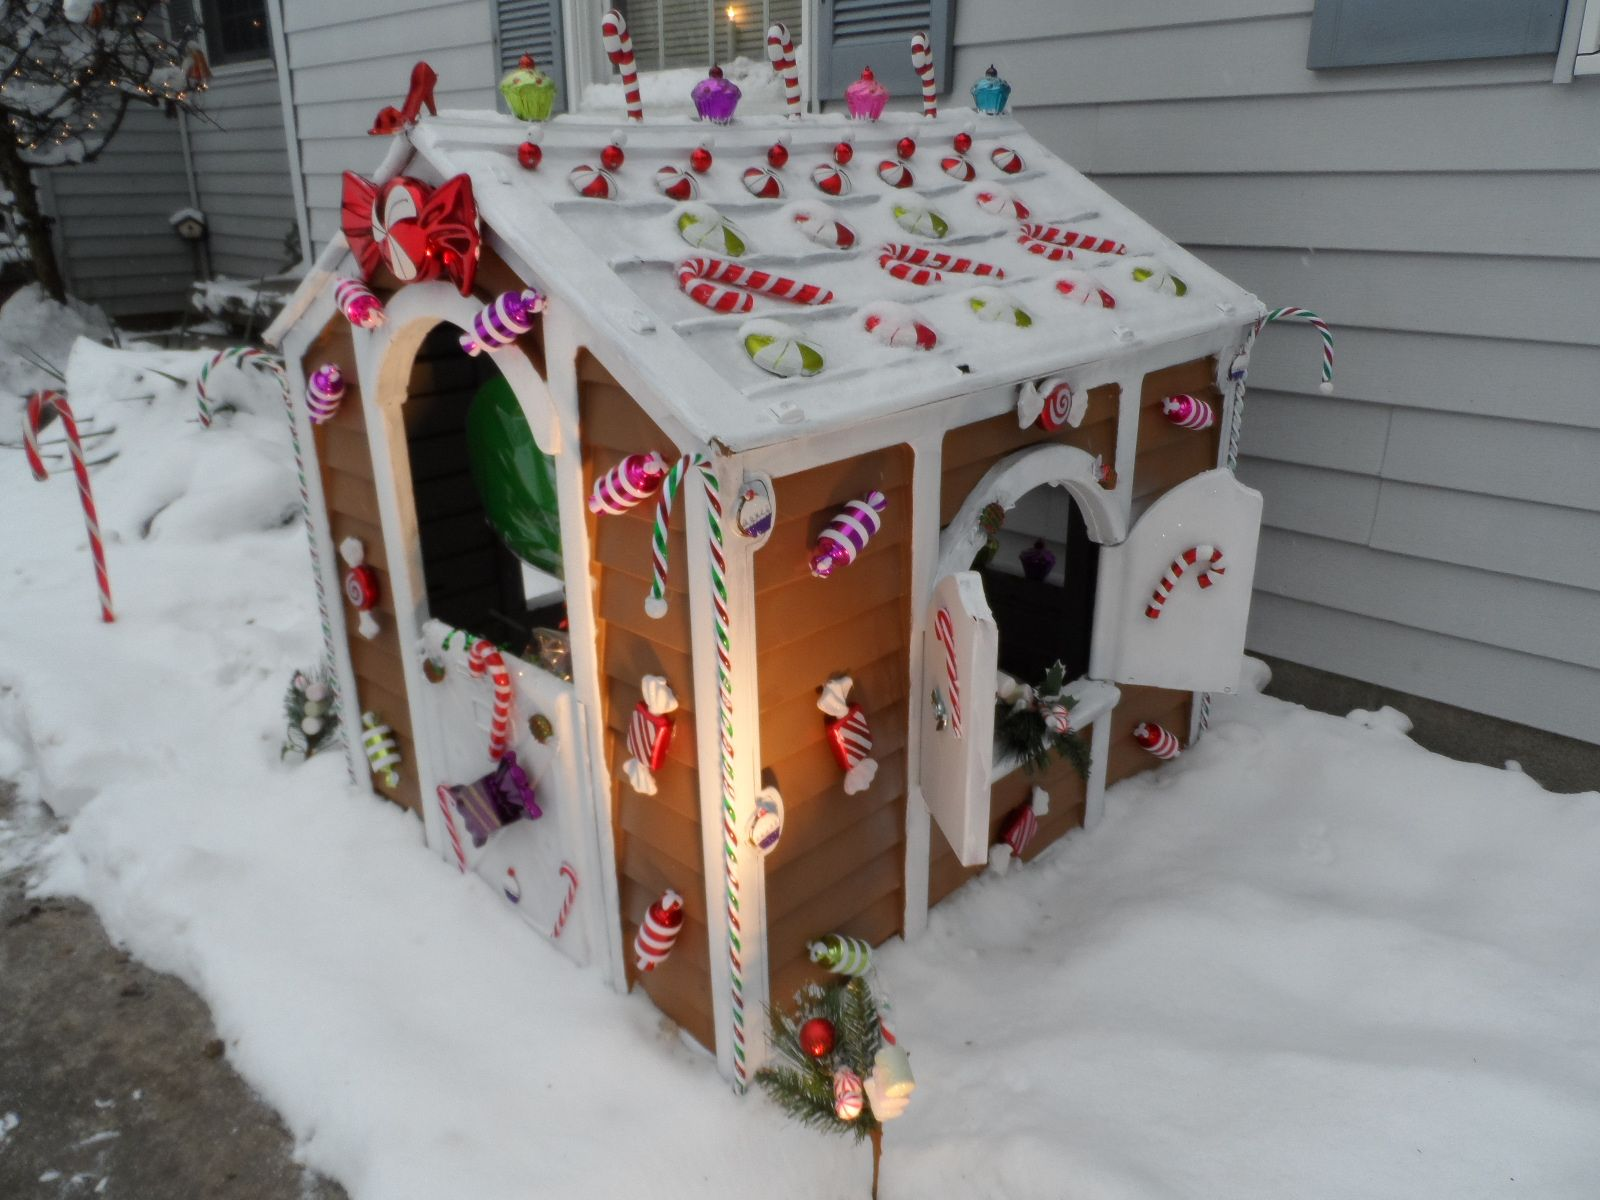 Gingerbread house created from my son's old playhouse.  Used some brown and white paint and hot glued the candy ornaments on it.